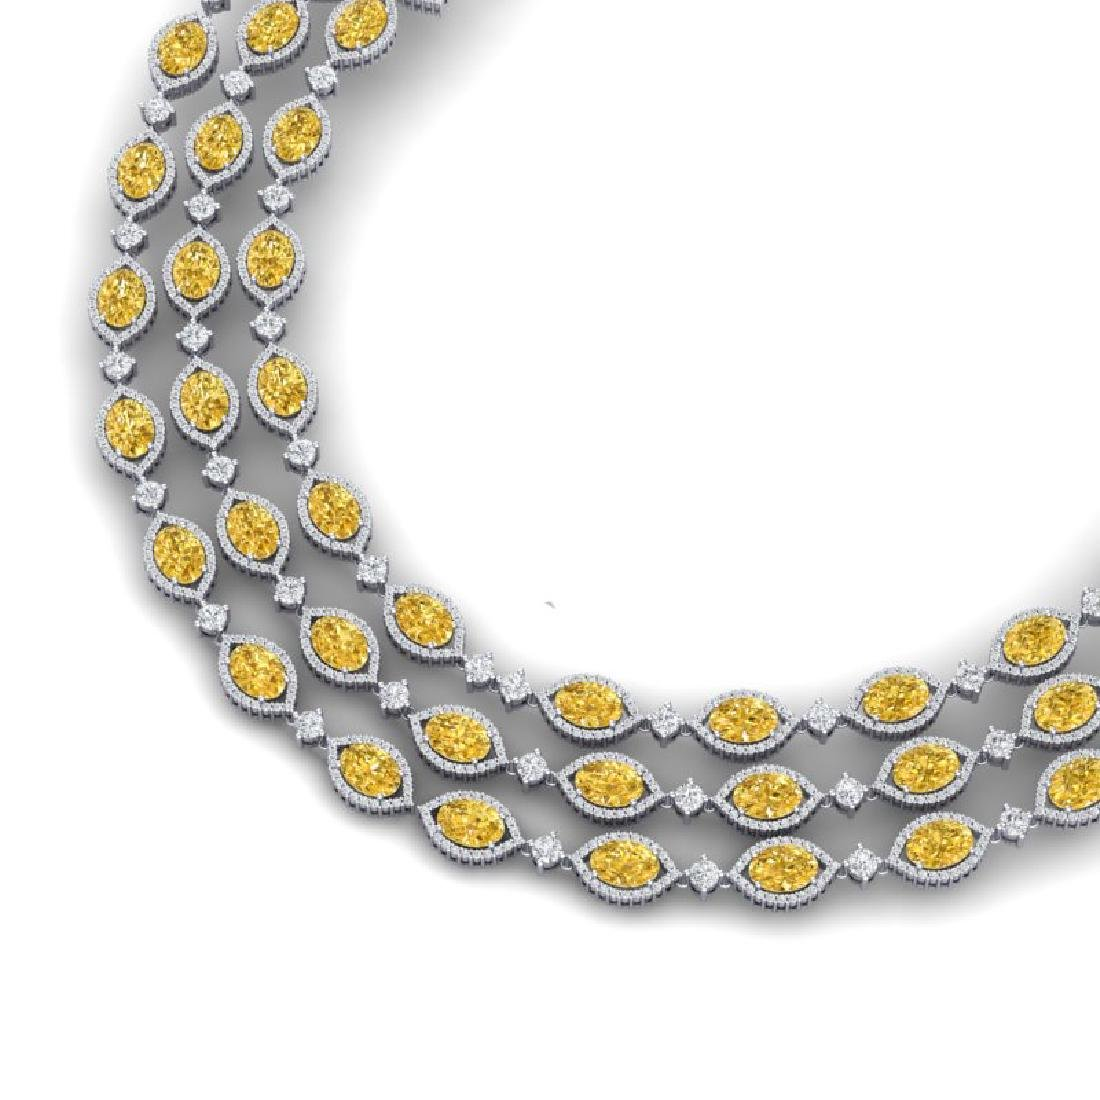 69.29 CTW Royalty Canary Citrine & VS Diamond Necklace